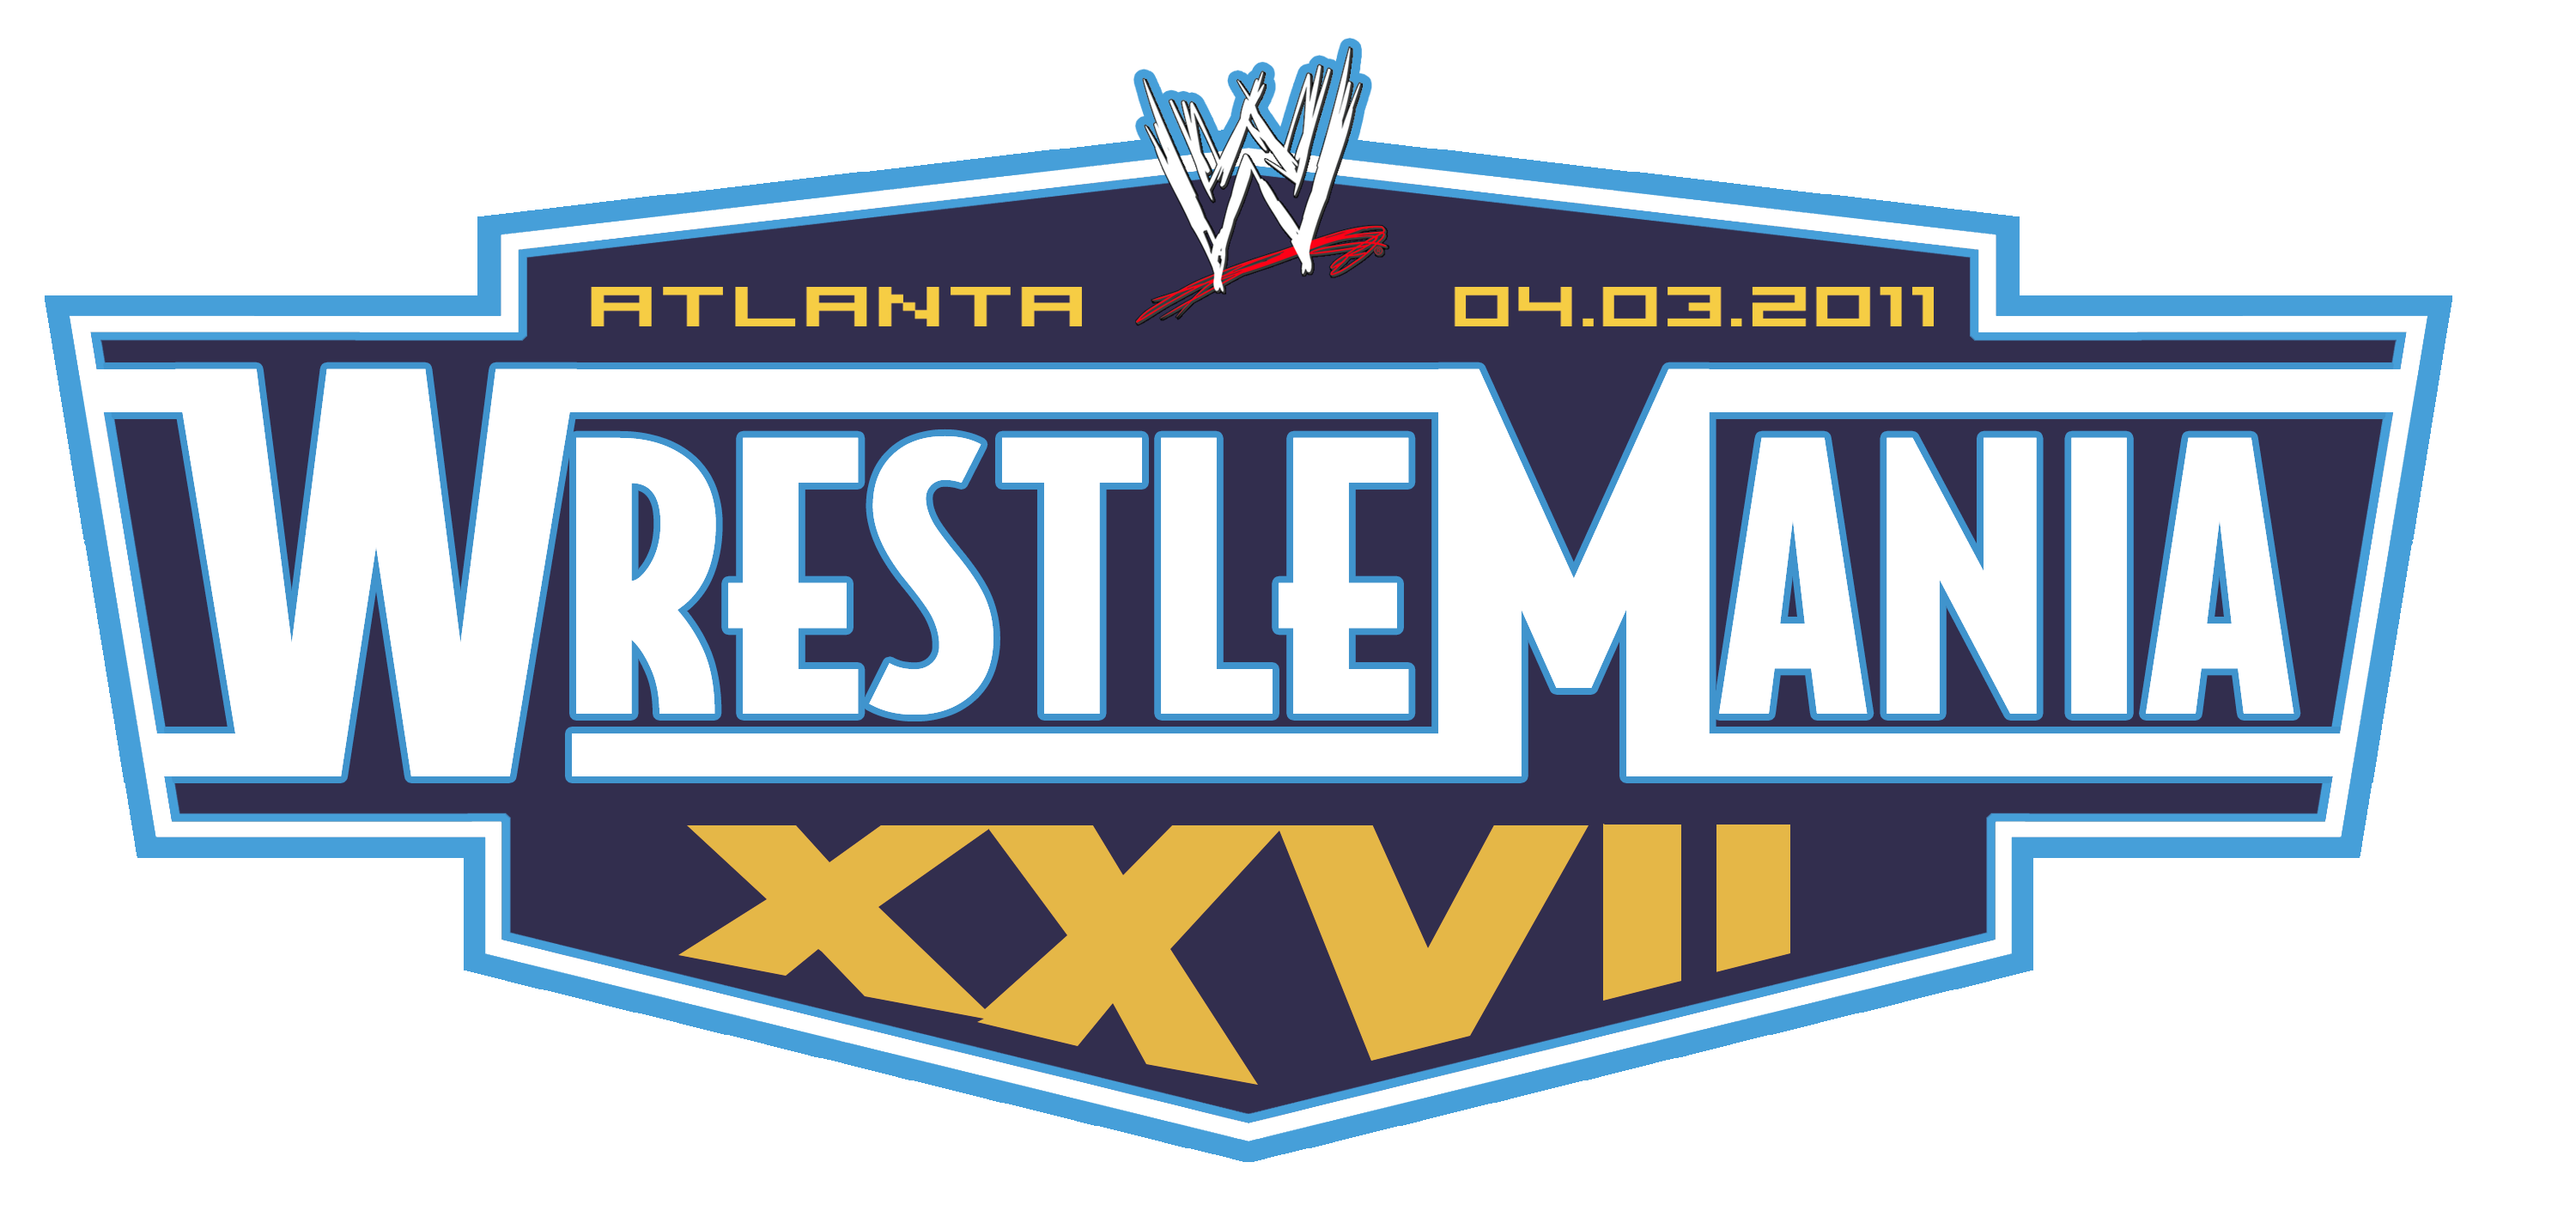 wrestlemania-27-logo